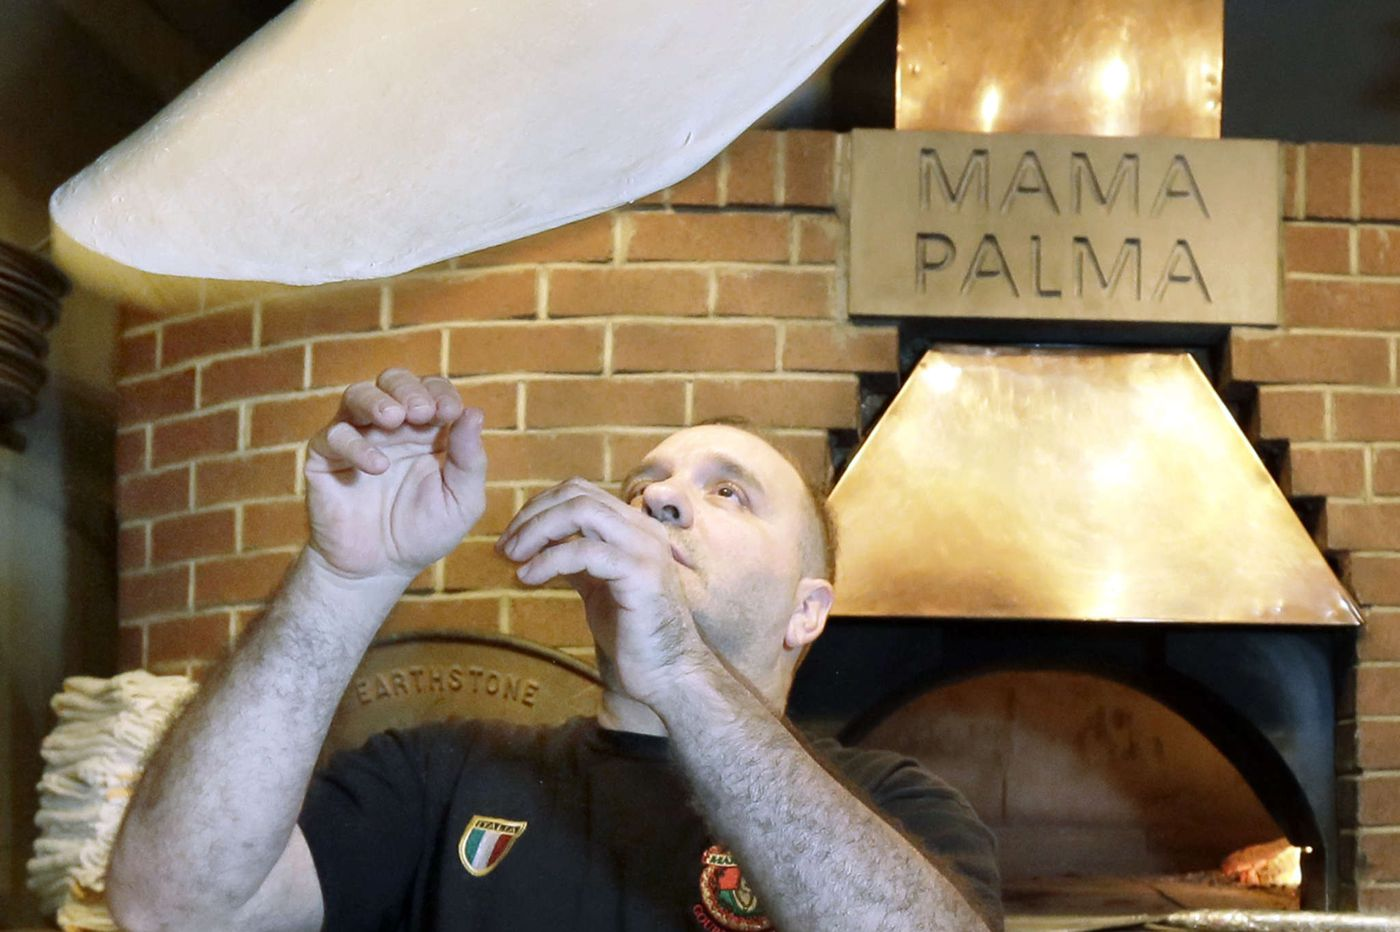 Mama Palma's to close for renovation and name change to Palma's Cucina